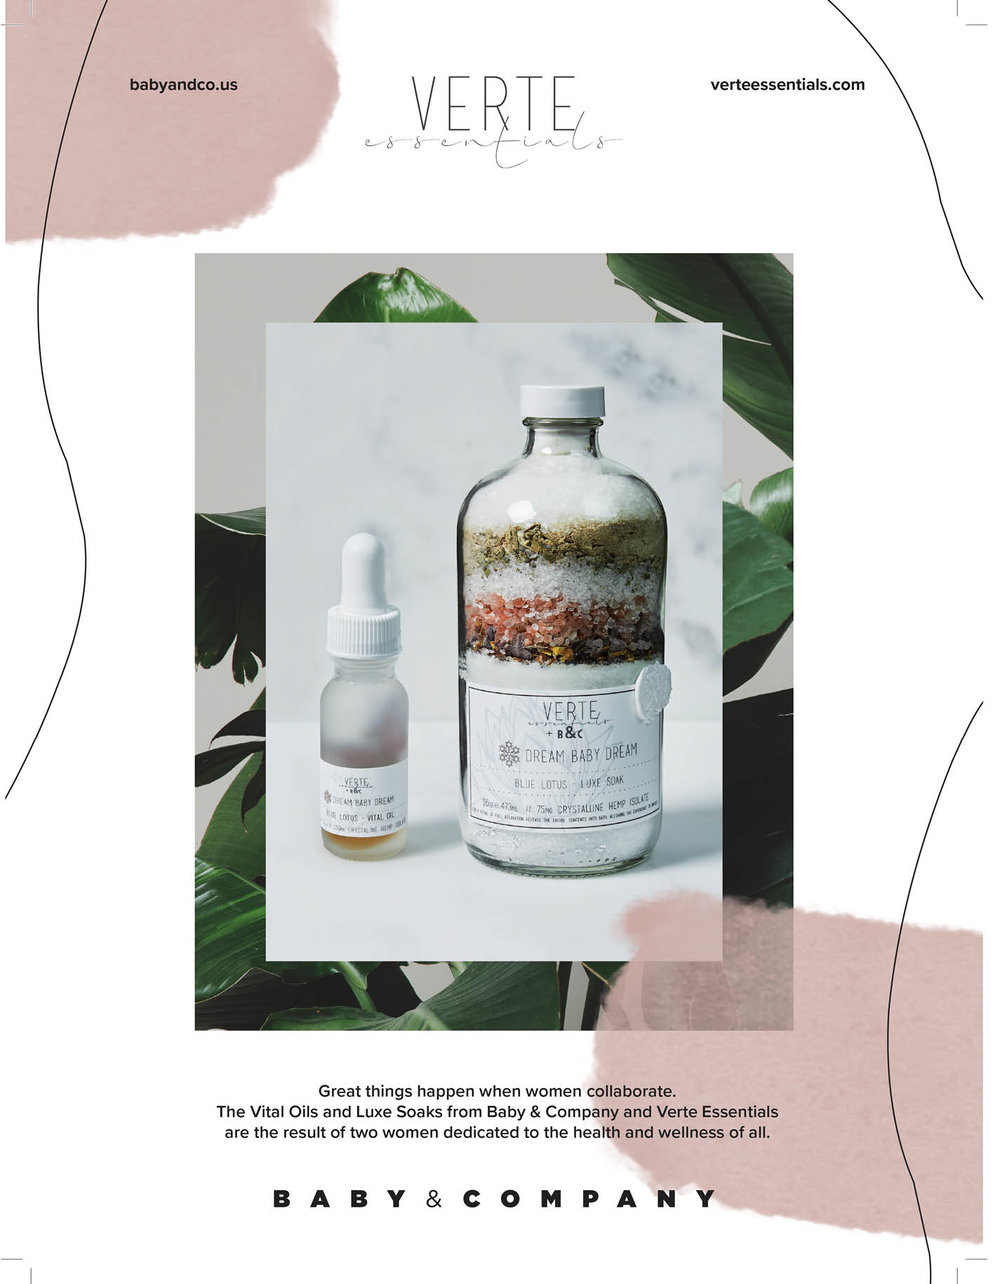 Great Things Happen When Women Collaborate. - The Vital Oils and Luxe Soaks from Baby & Company and Verte Essentials are the result of two women dedicated to the health of wellness of all.